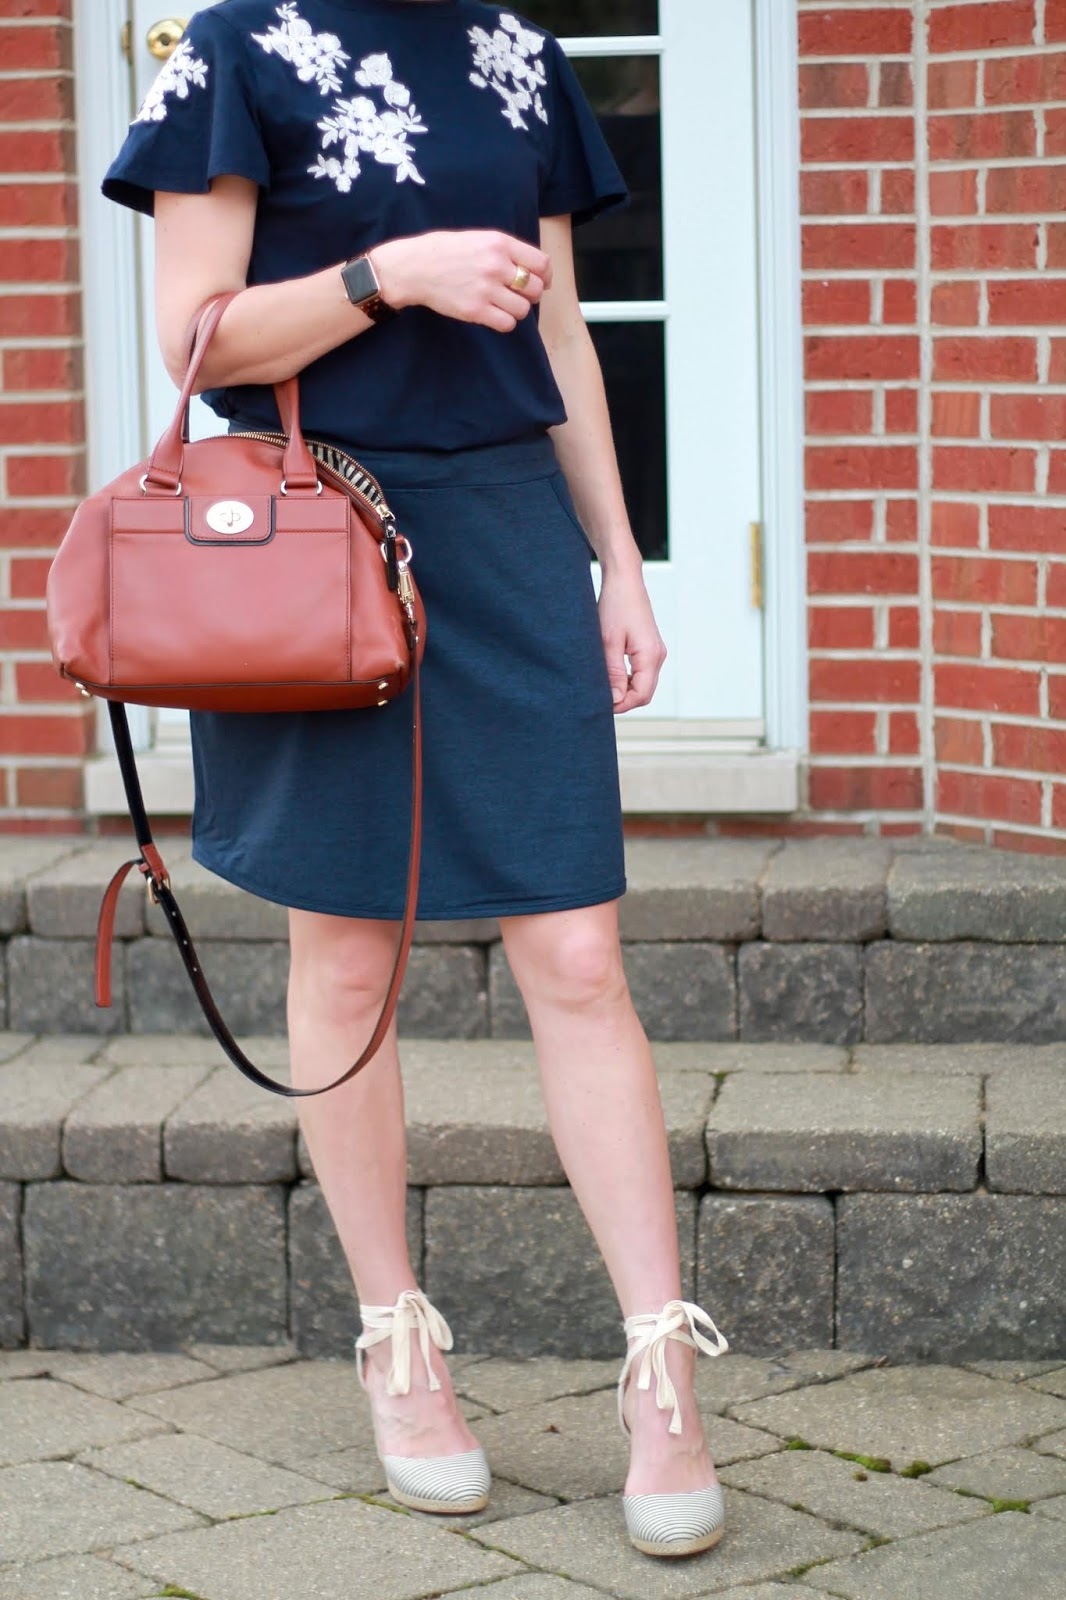 Aventura navy skirt, navy embroidered top, striped espadrilles, cognac crossbody satchel, neon pink earrings